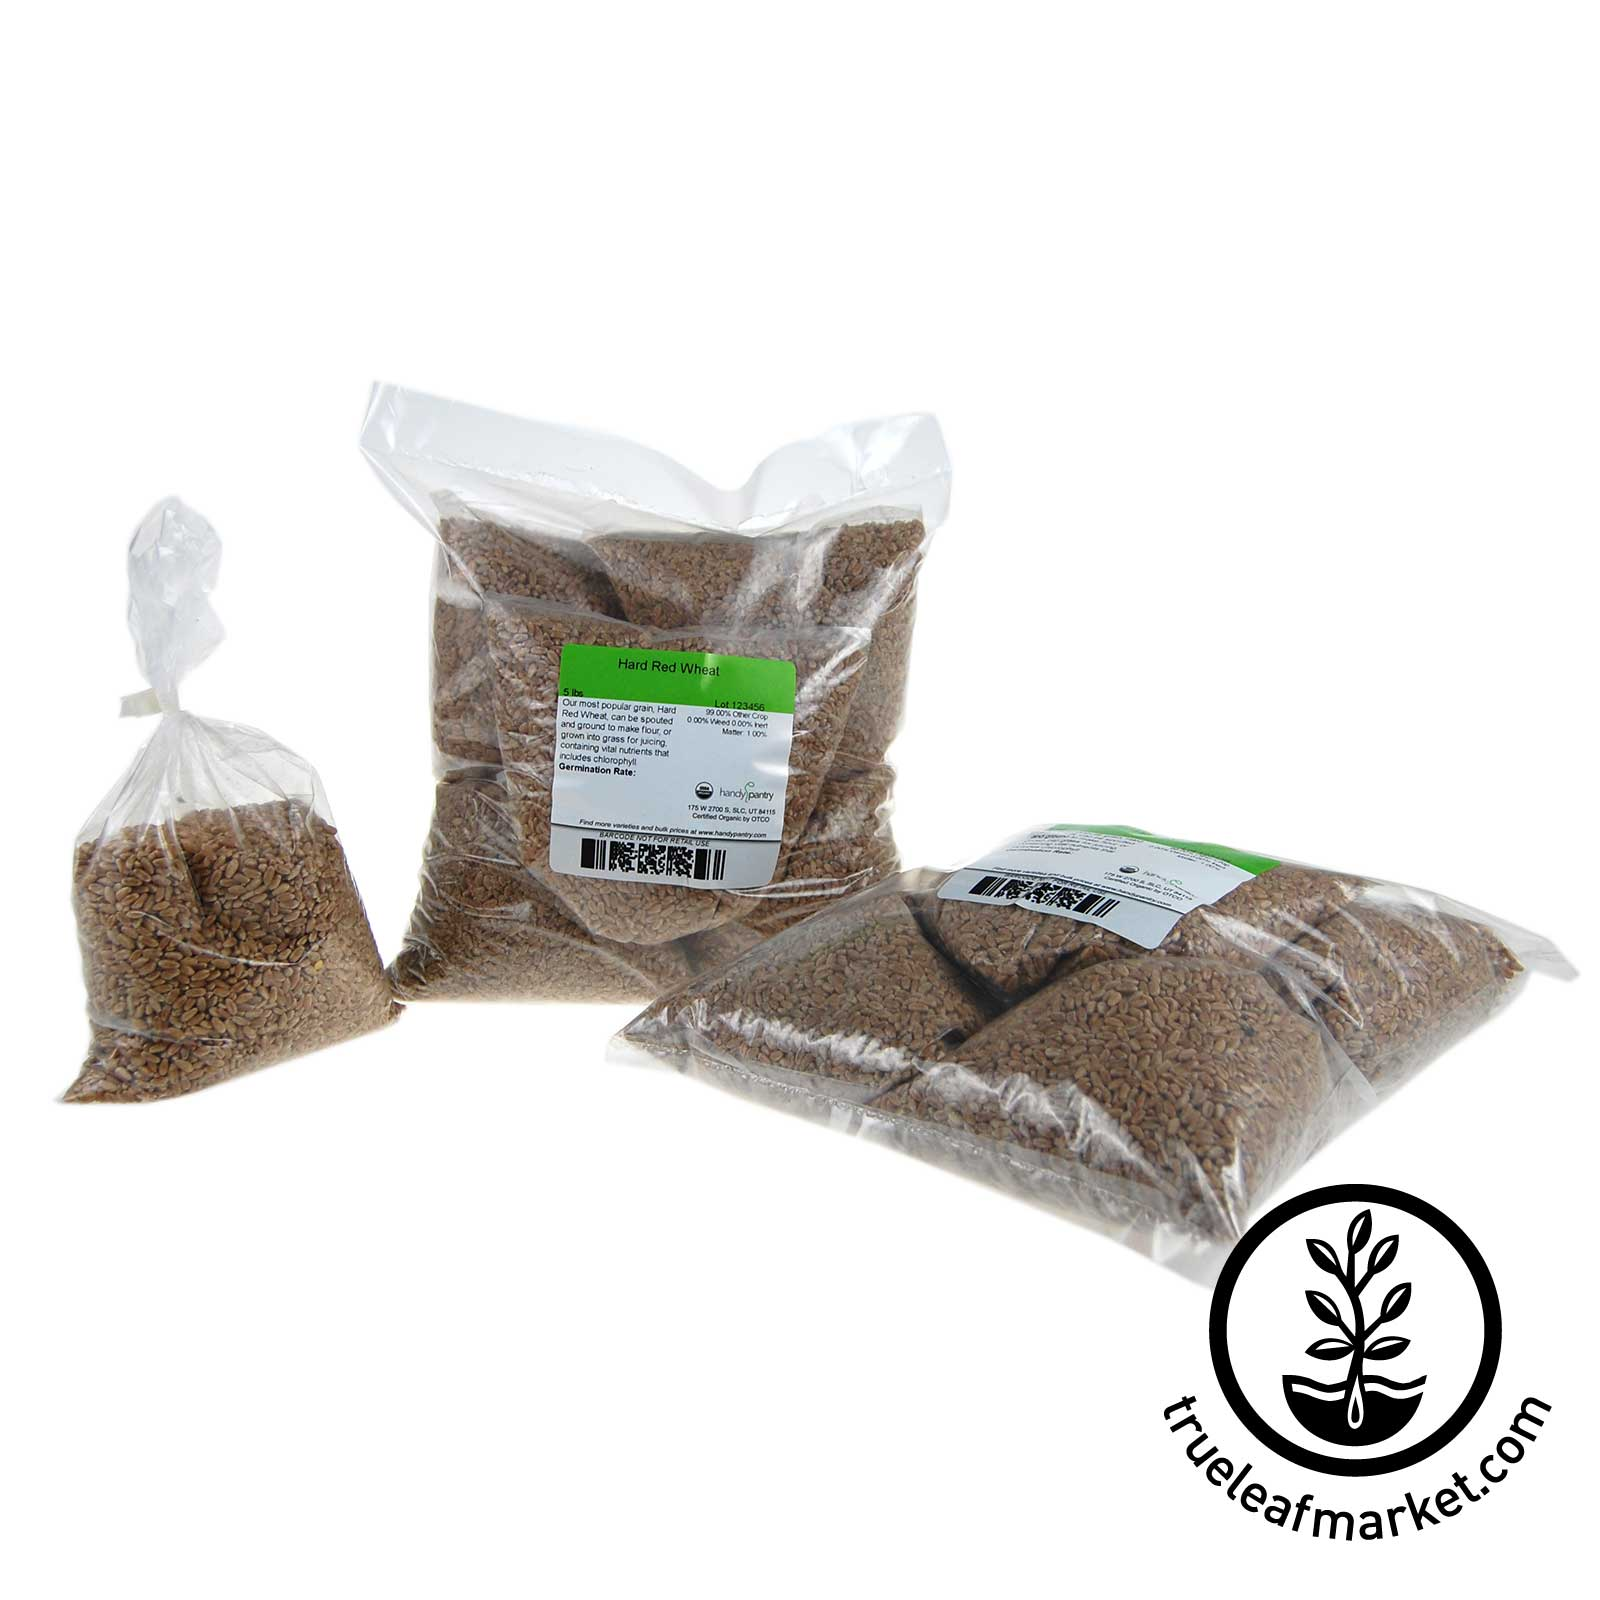 10 - One LB Bags- Hard Red Pre-Measured Wheatgrass Seed Refills